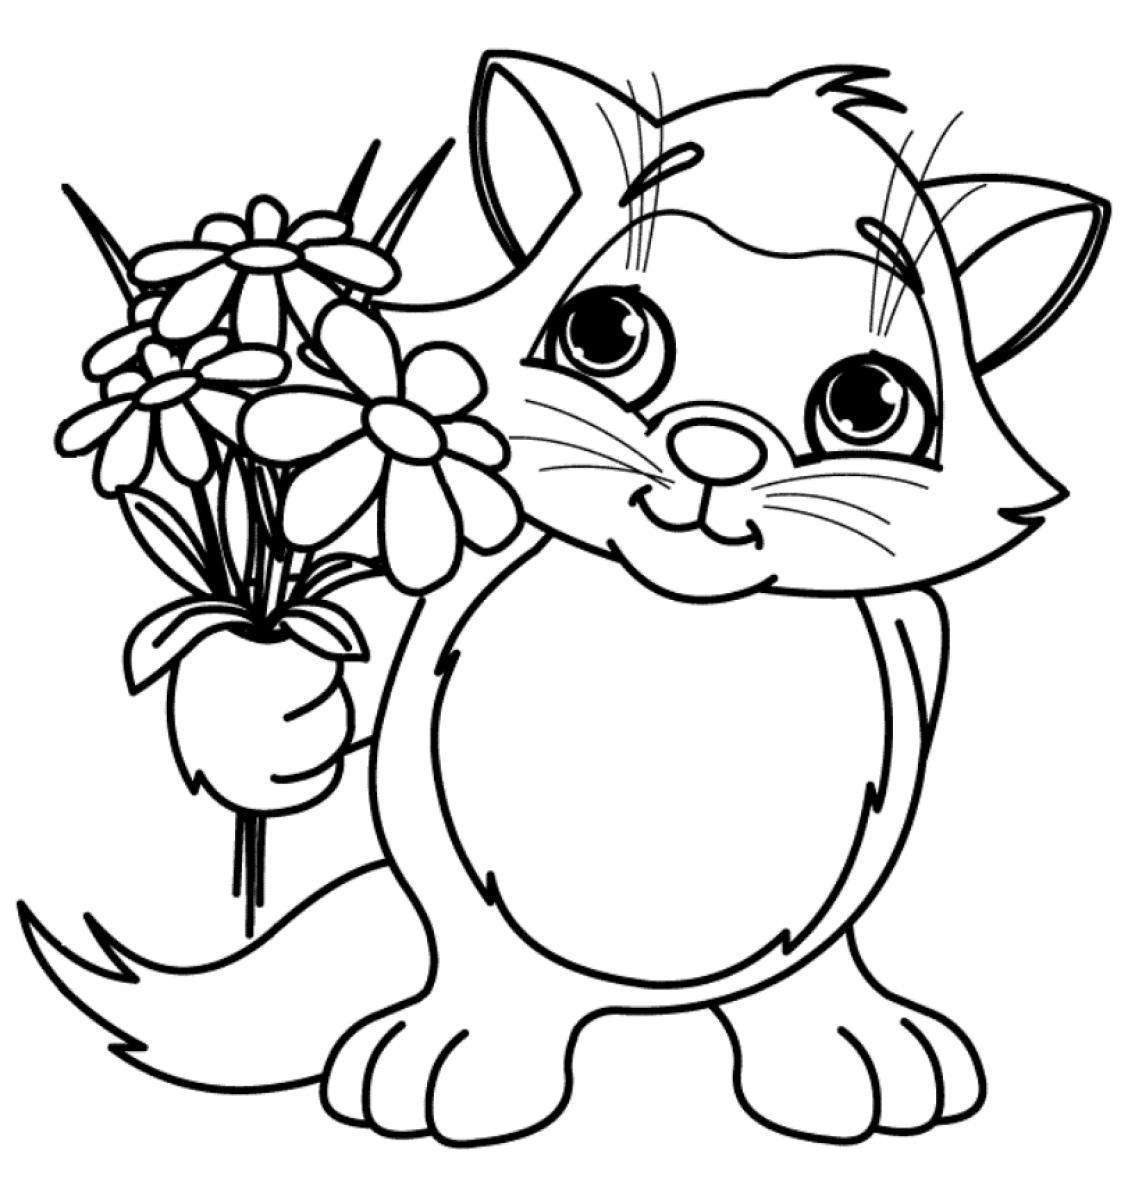 Printable Flower Coloring Pages For Kids at GetDrawings.com ...